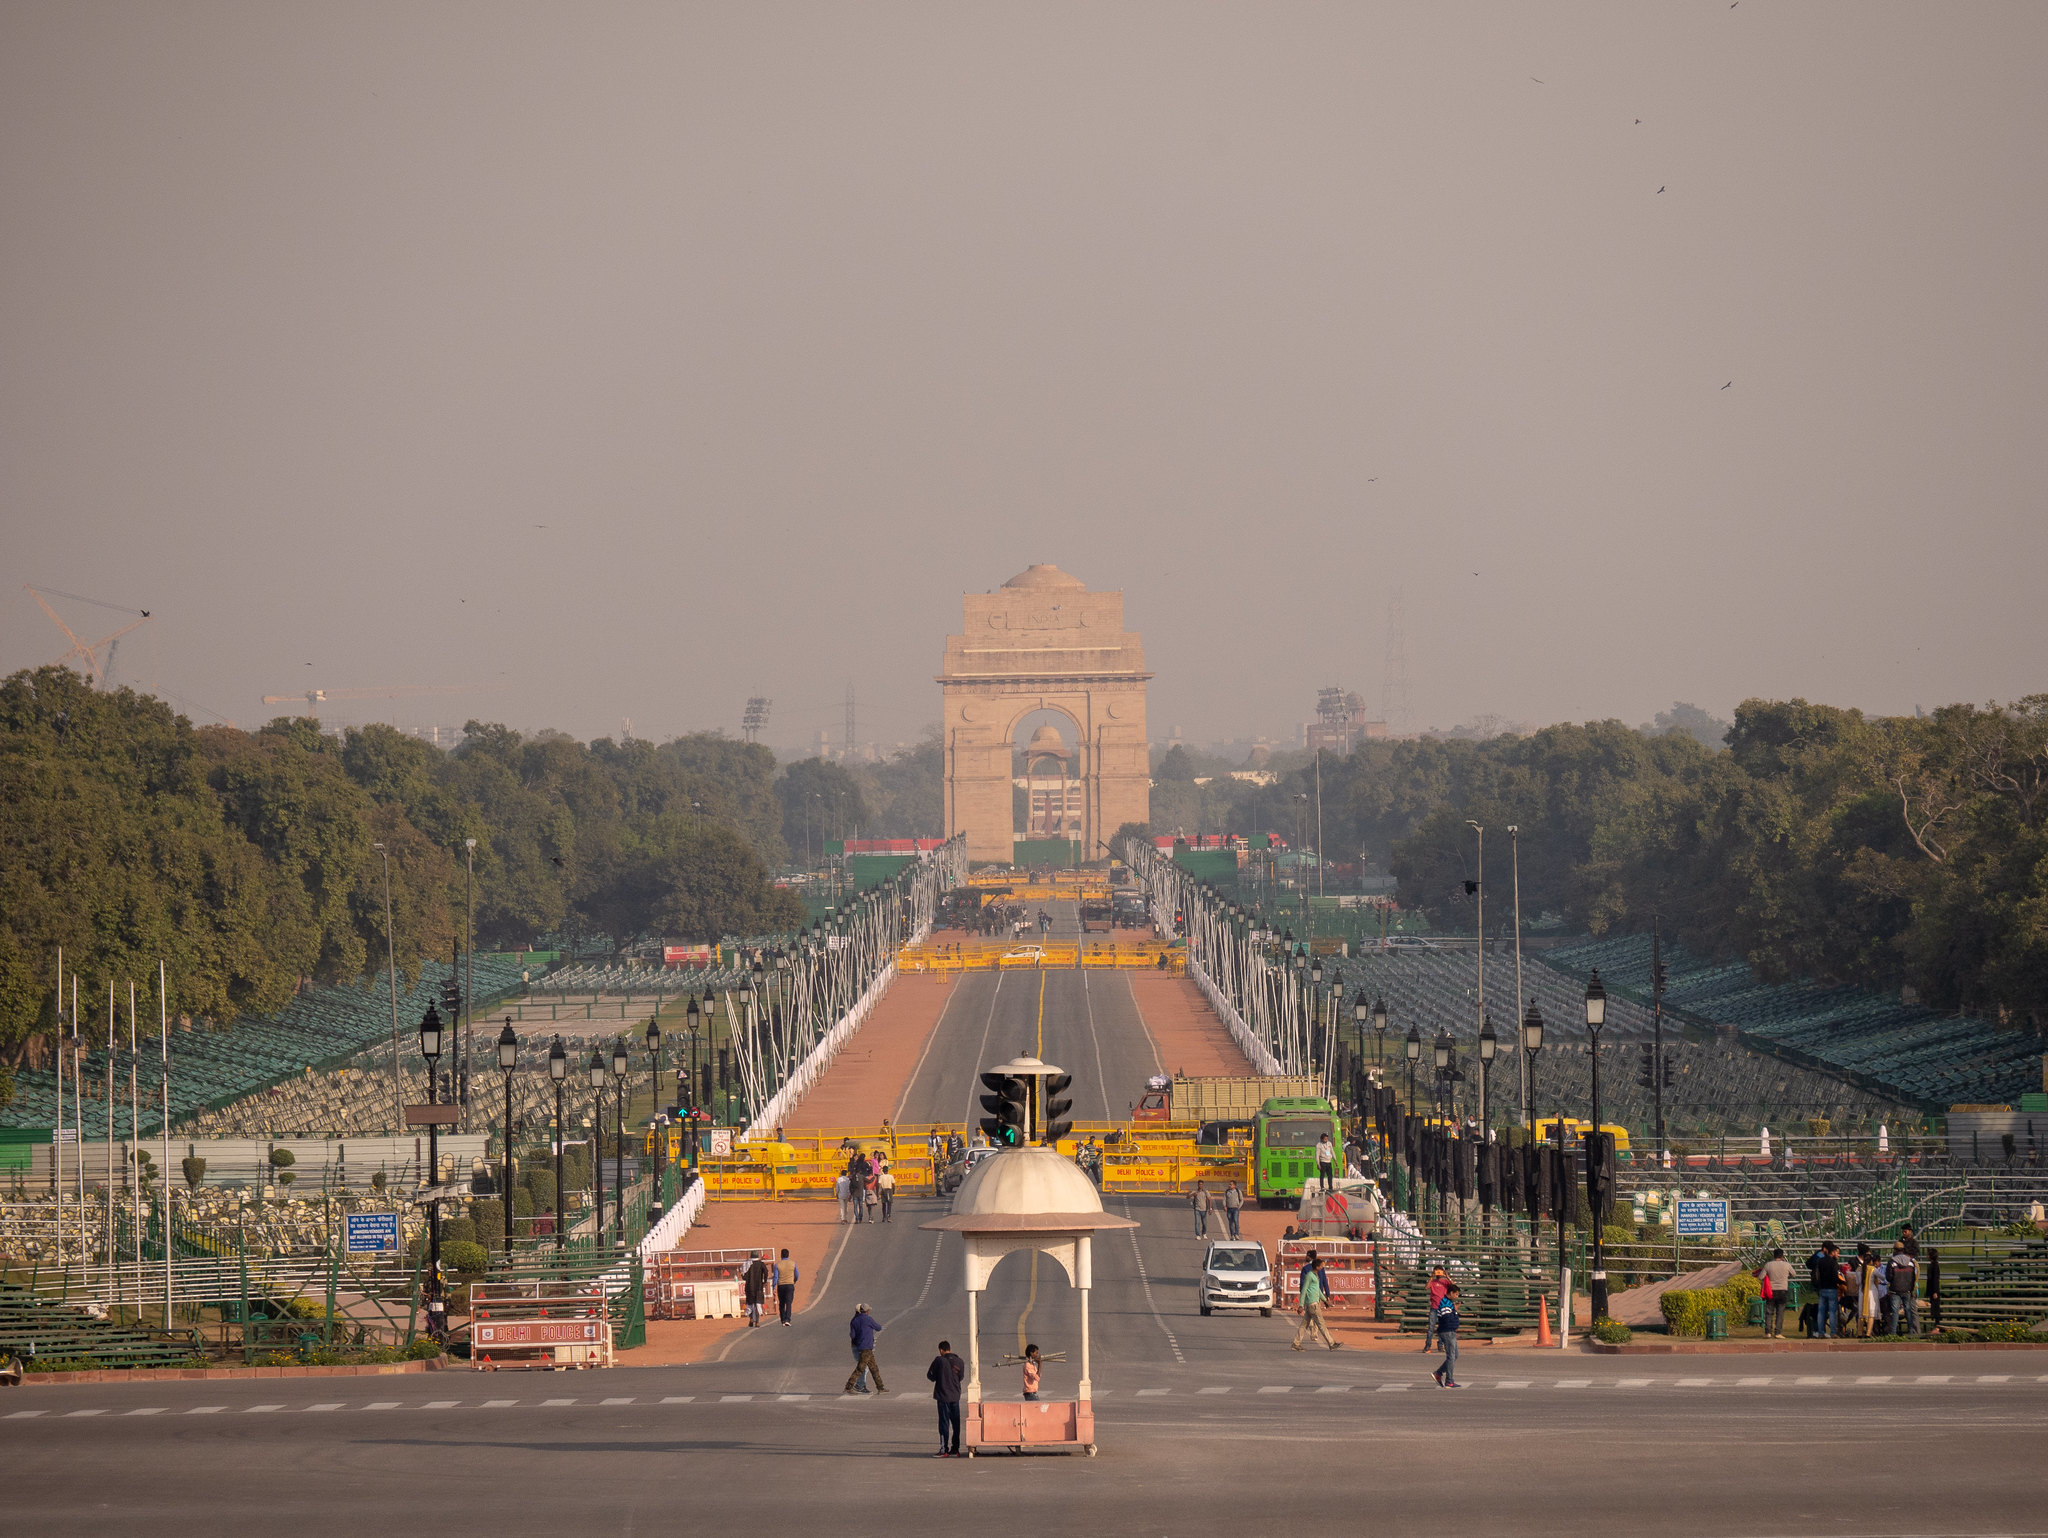 A view of the Central Vista, with India Gate in the distance. The massive scale and complexity of the projects envisaged for this area, which are proposed to be completed before the next general elections, challenges the imagination.